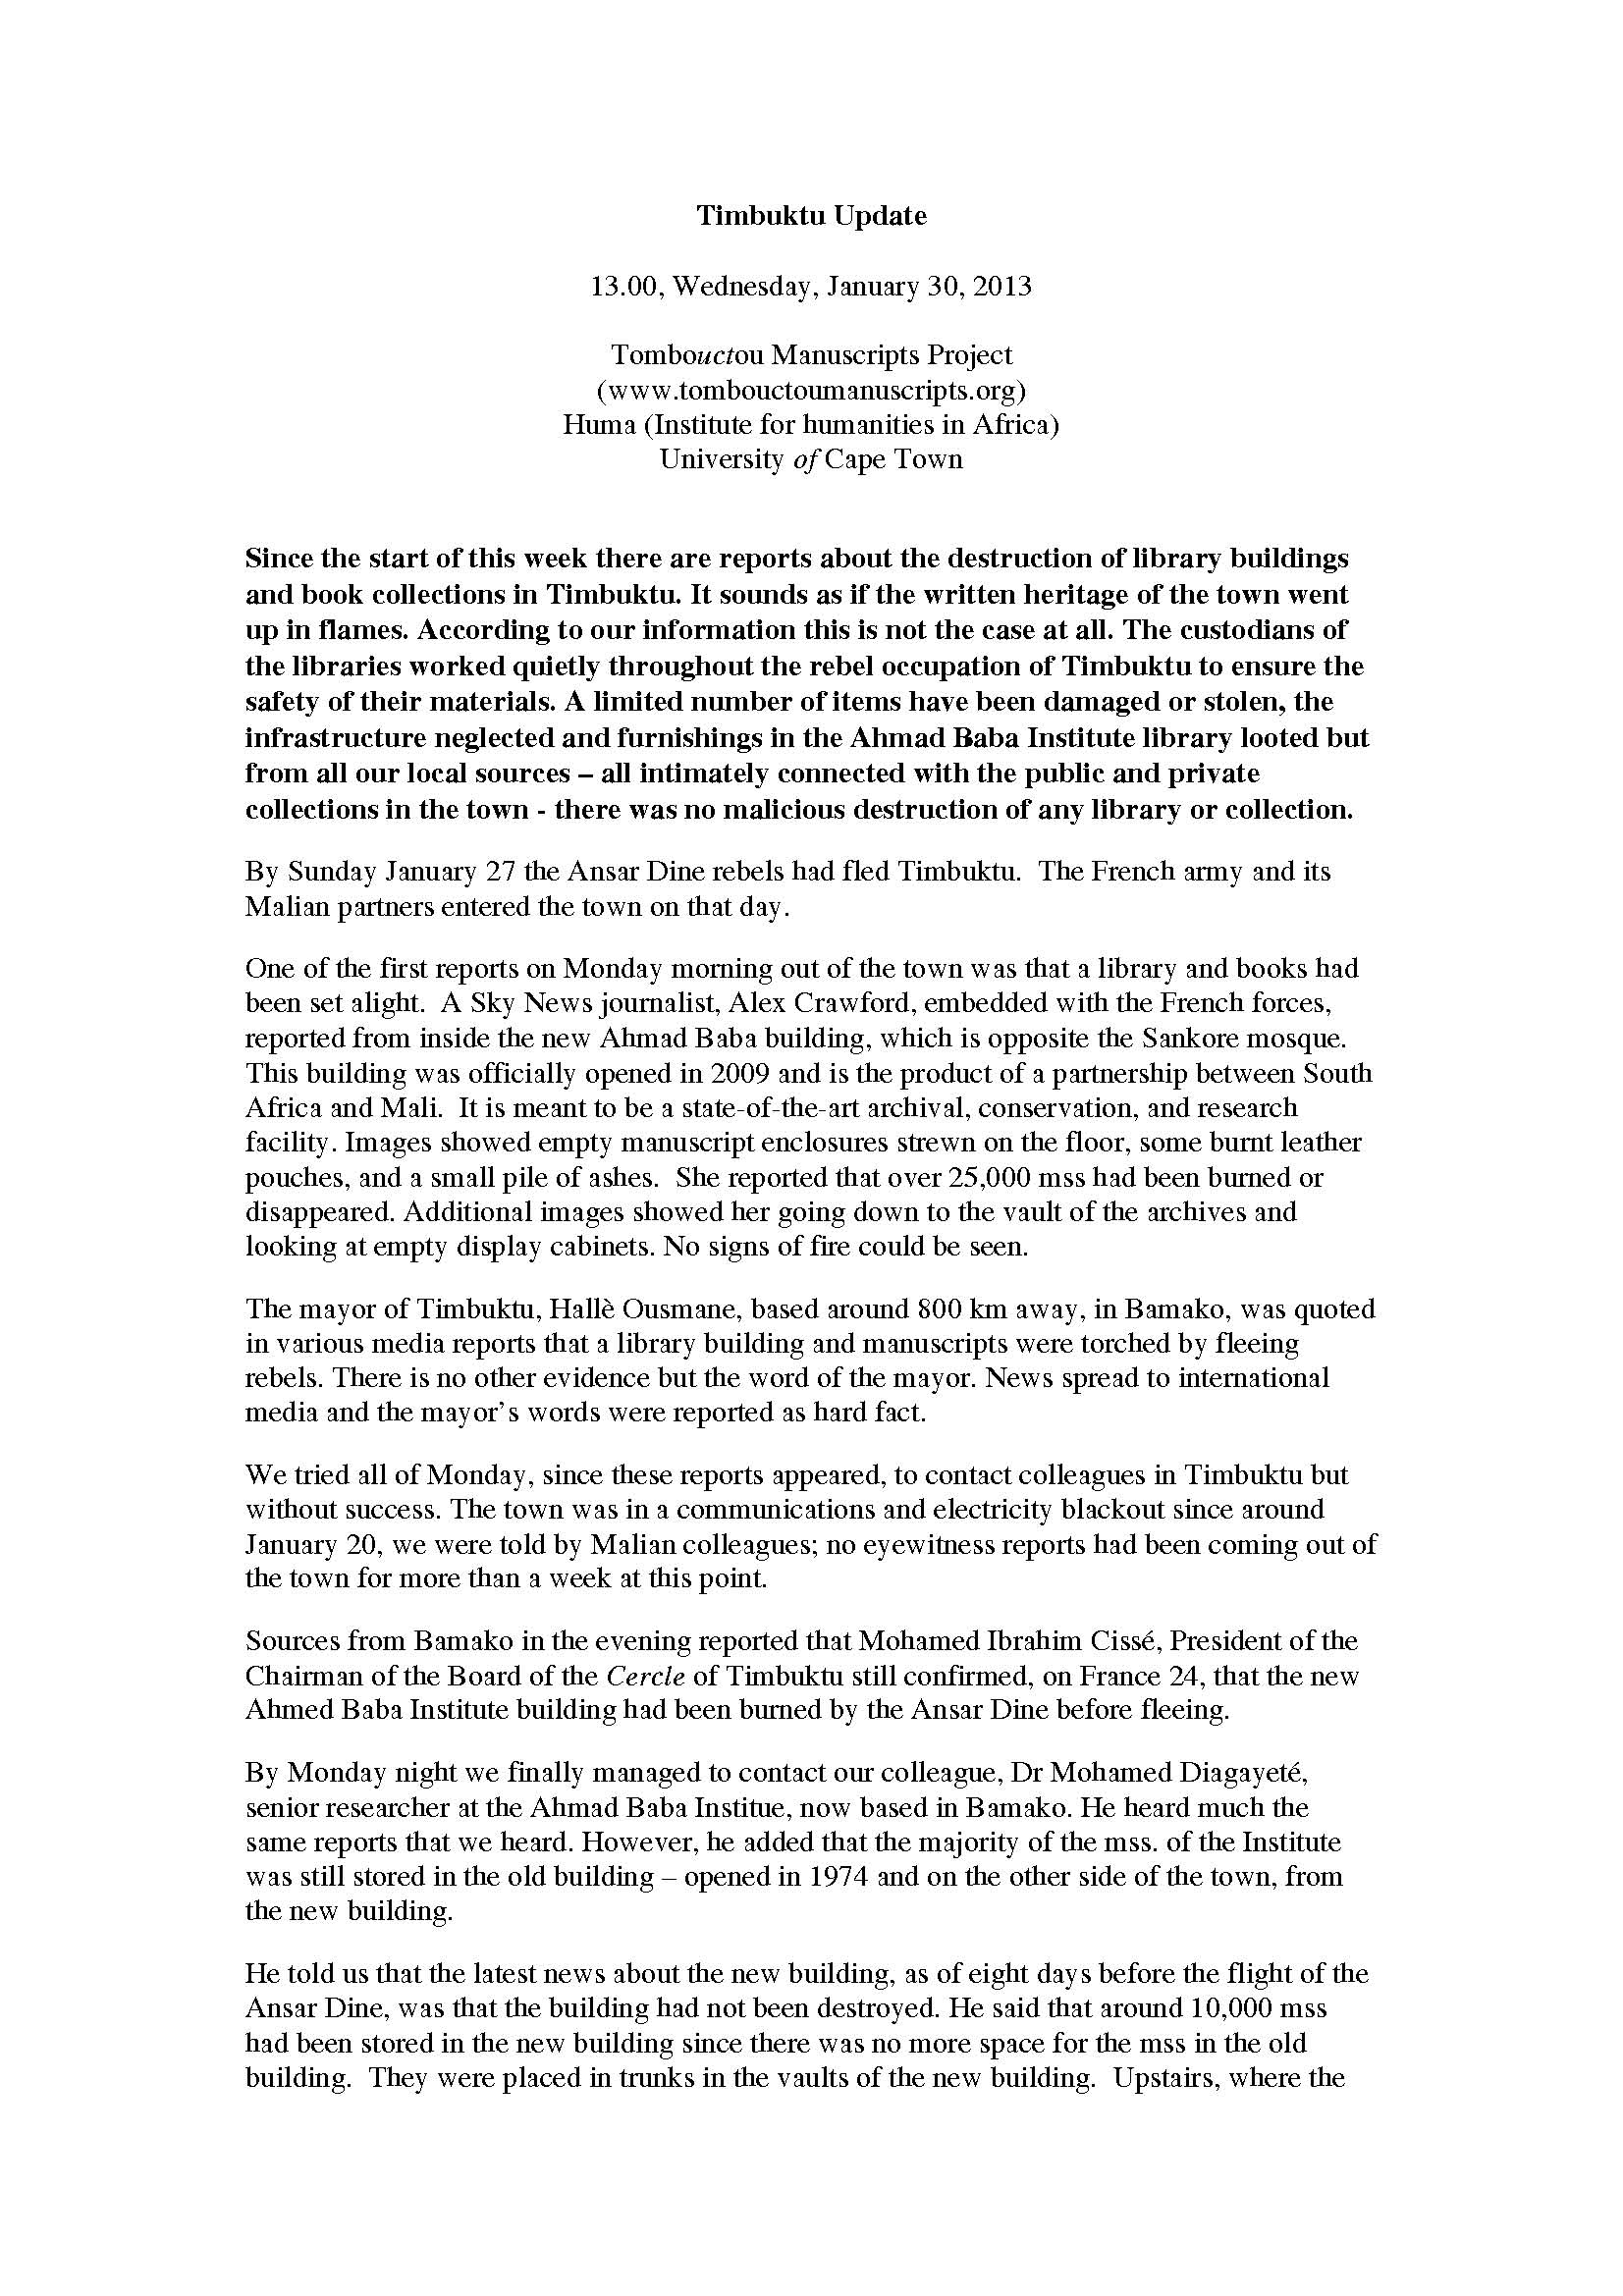 019 Essay Example Sample Uc Essays Good Examples University Personal Statement Cover Letter Business School Latest From Timbuktu Jan30 Pa For Undergraduate Pdf Medical Imposing Prompt 1 6 3 Full